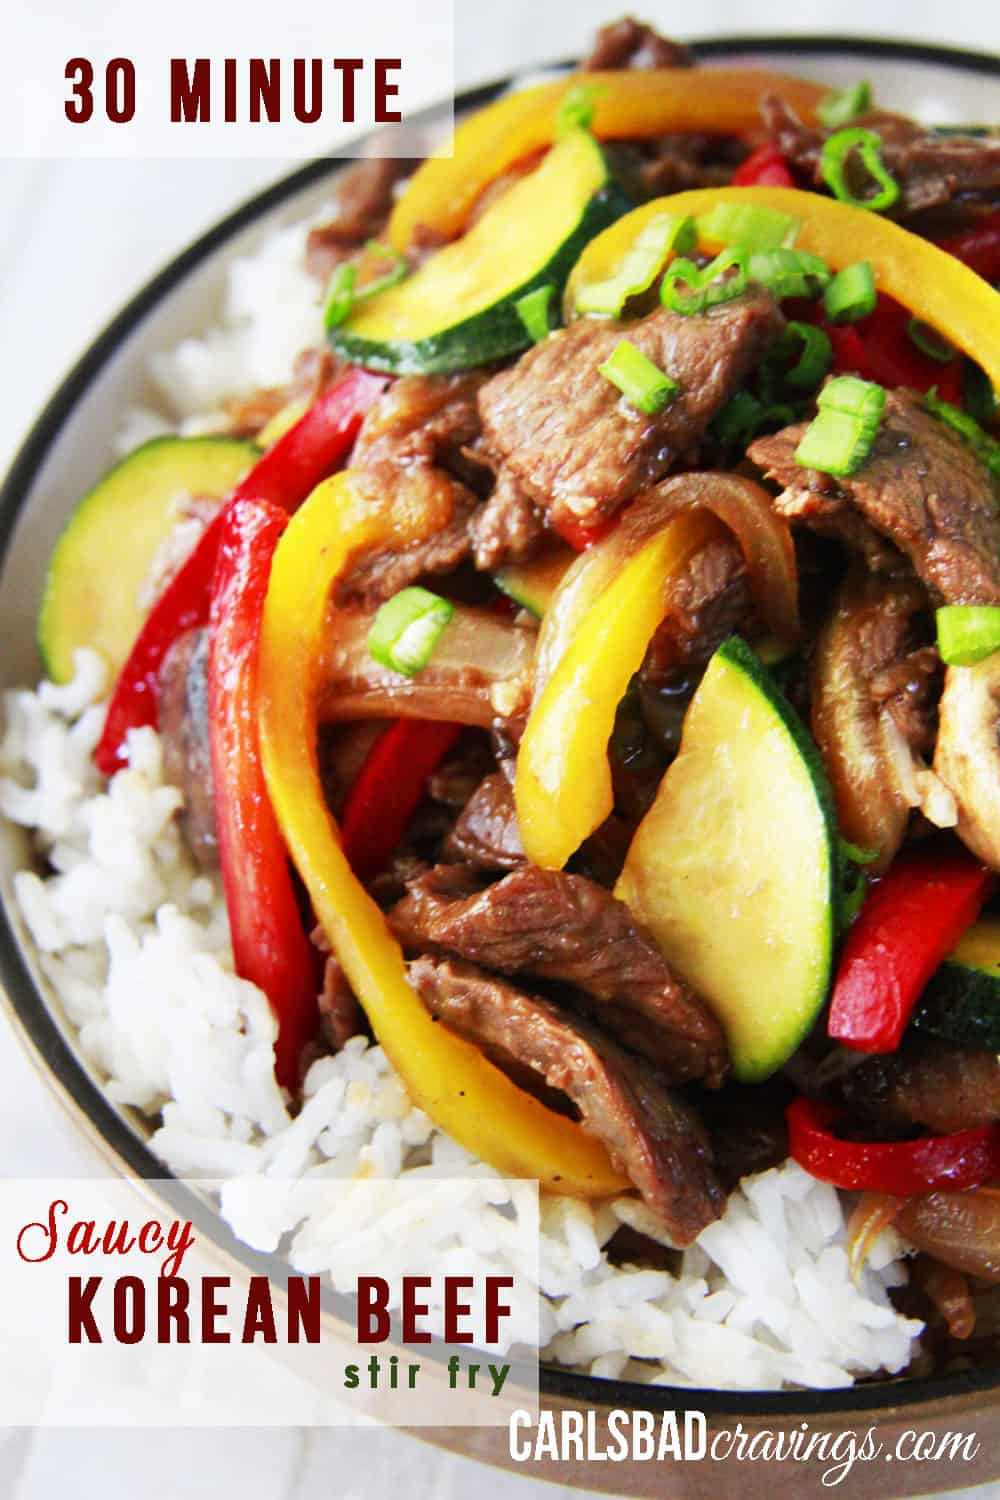 Saucy Korean Beef Stir Fry One Pot 30 Minutes